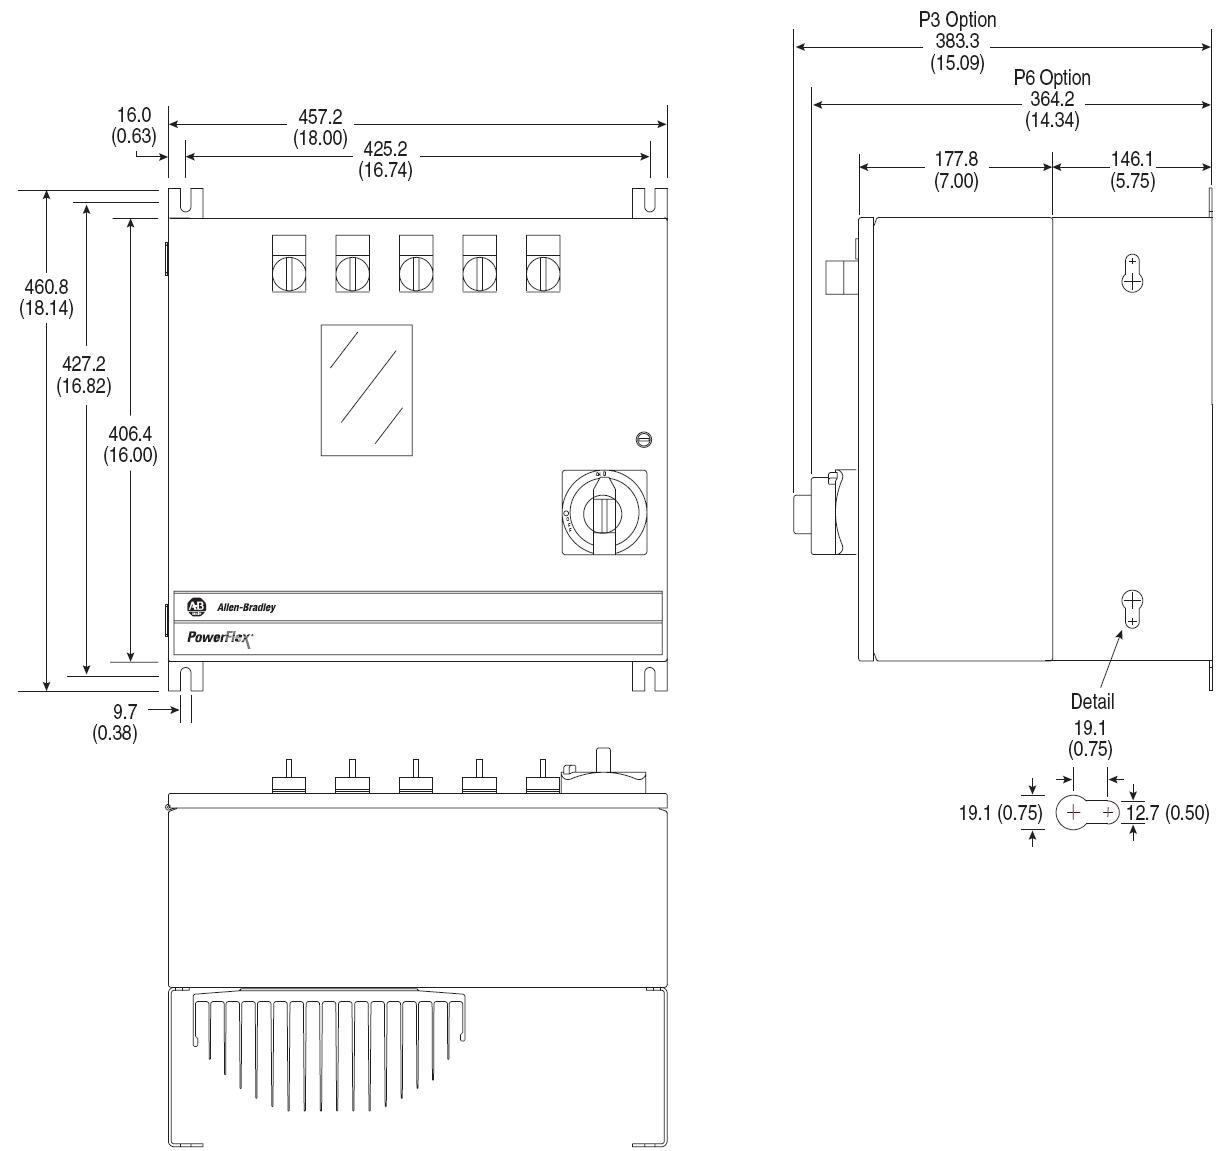 Johnson Messenger 250 Mic Wiring Diagram 40 Images Diagrams For 7 0 Powerflex 755 Series A 750